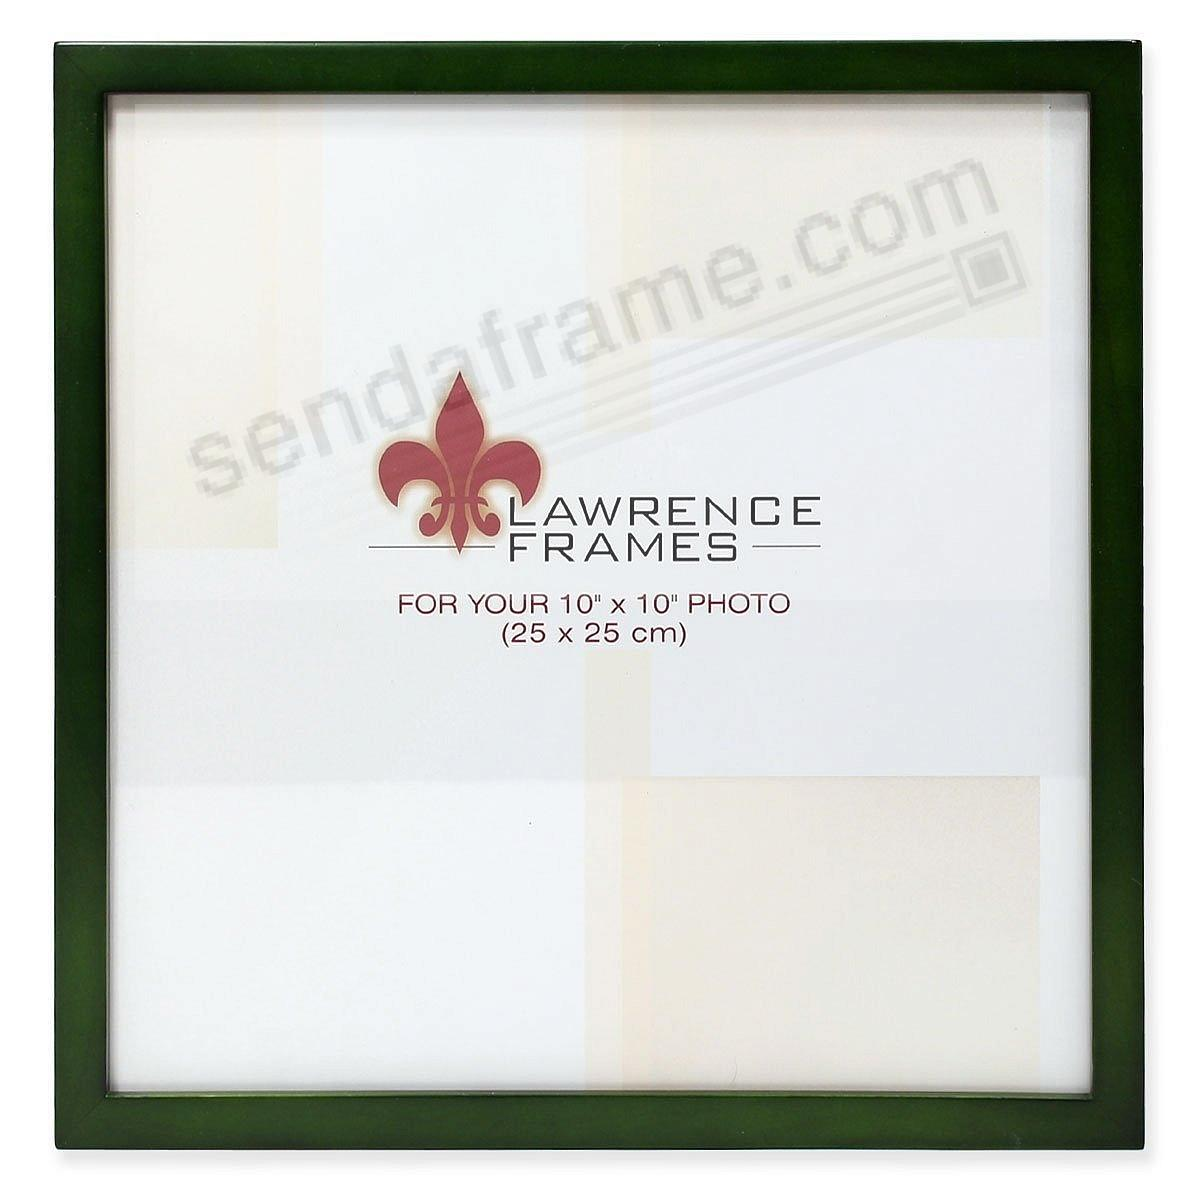 SQUARE CORNER Green Stain classic 10x10 frame by Lawrence Frames®